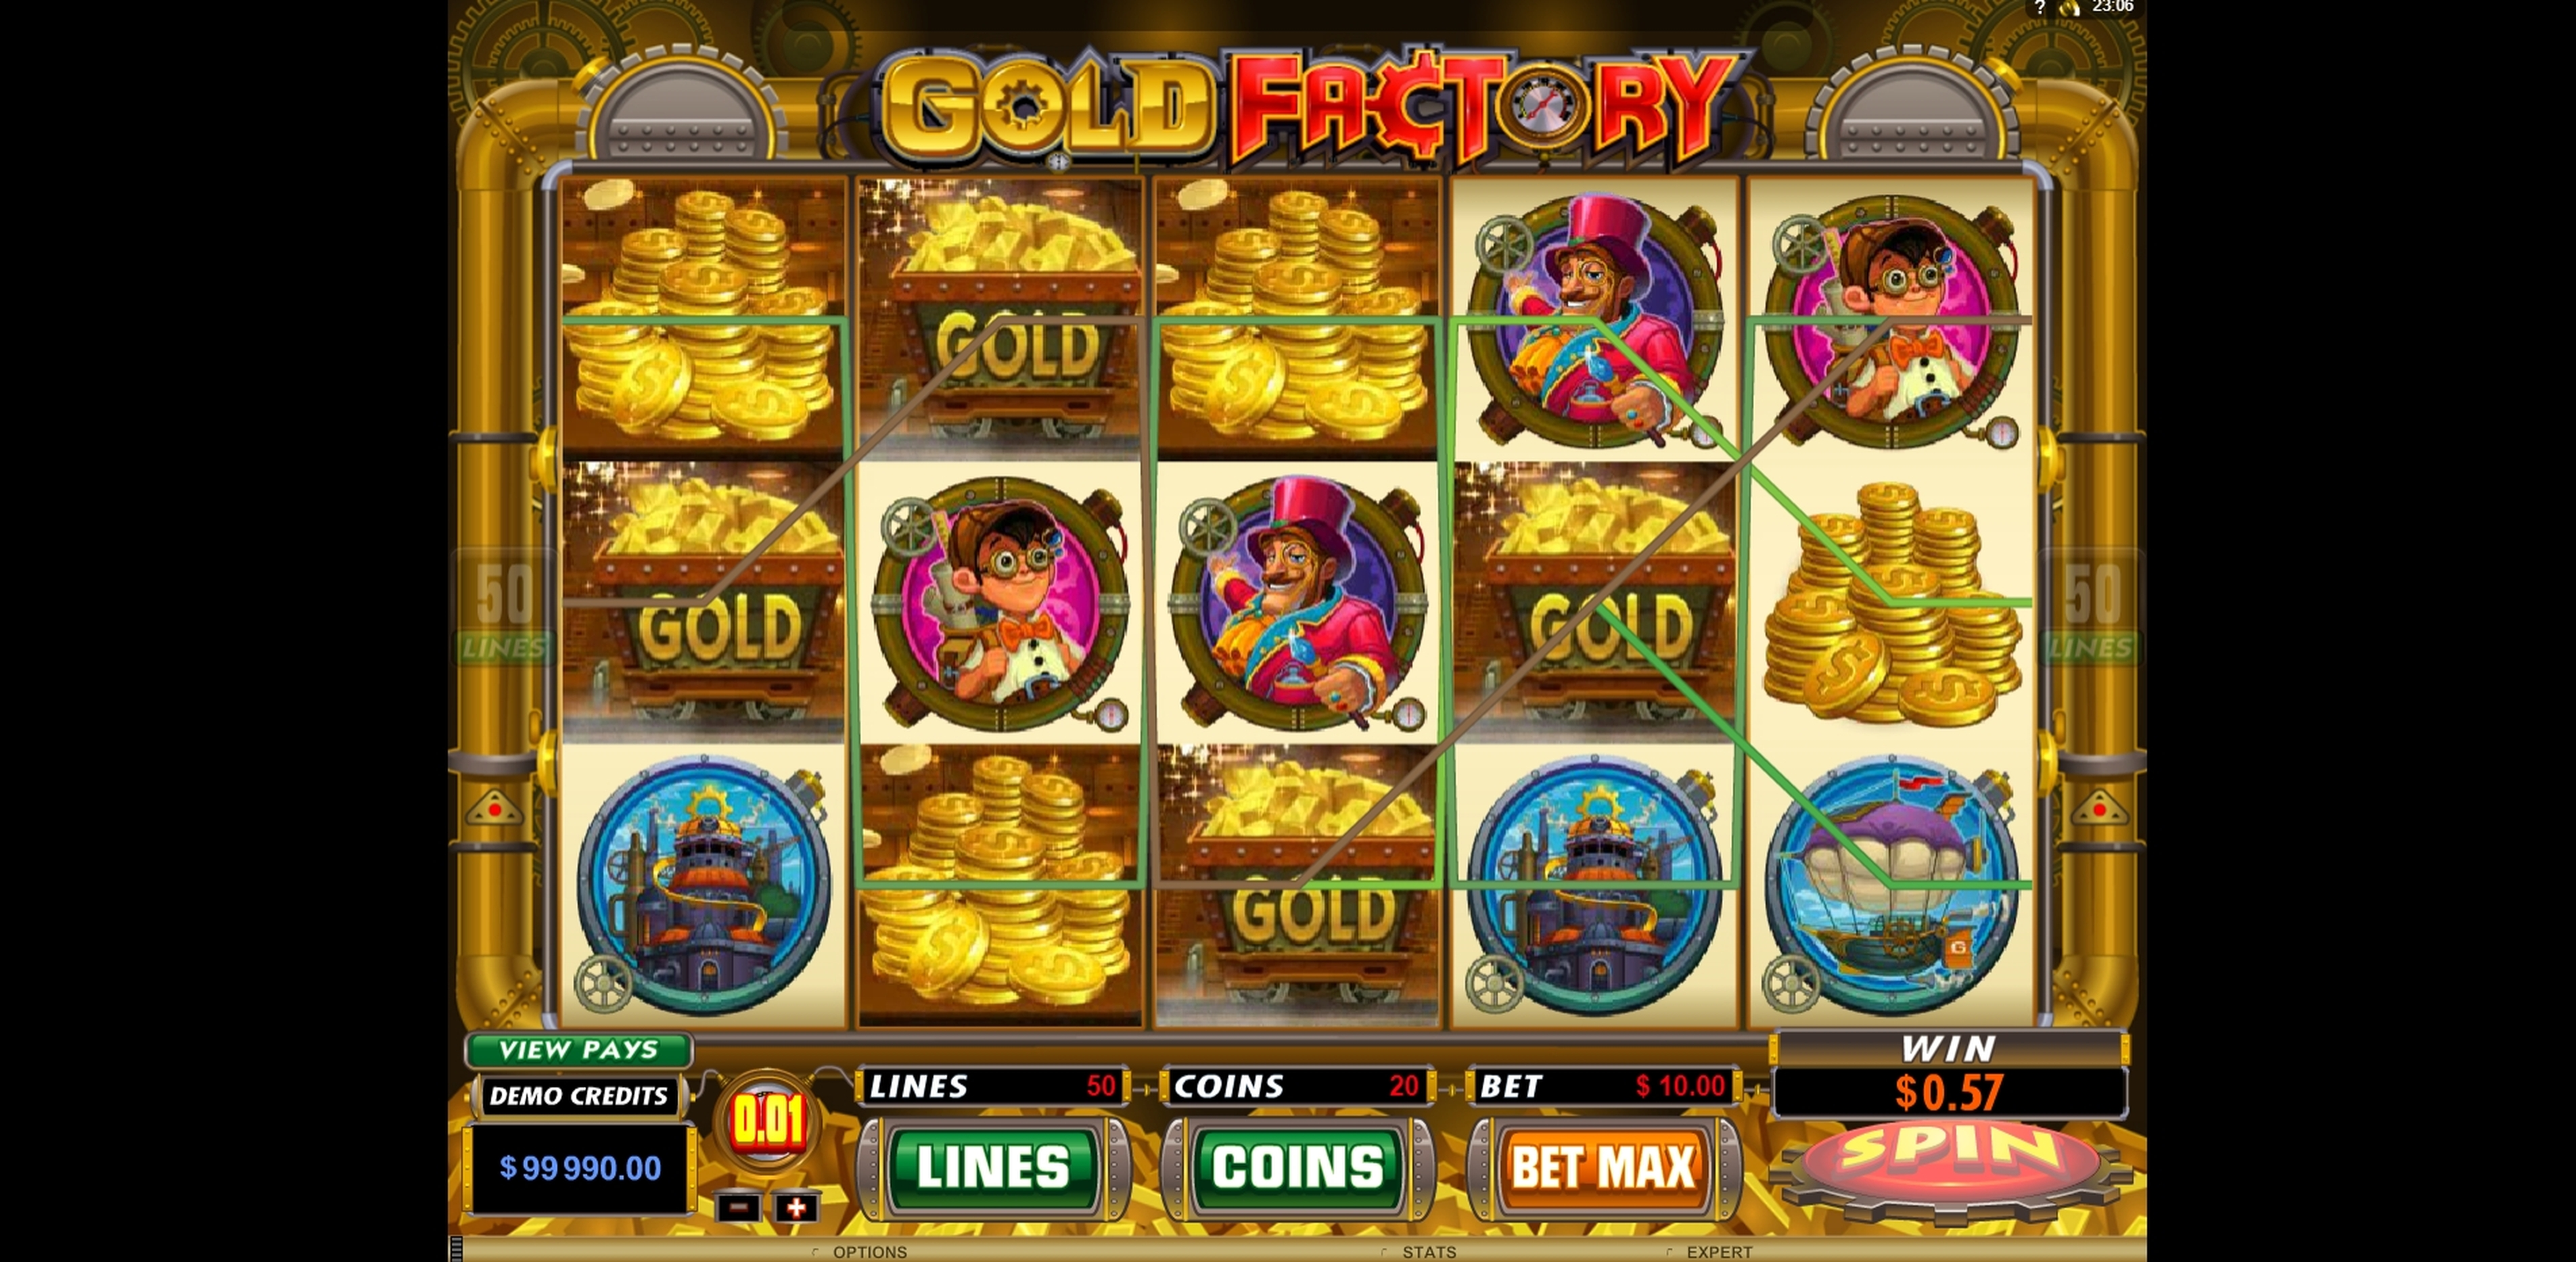 Win Money in Gold Factory Free Slot Game by Microgaming